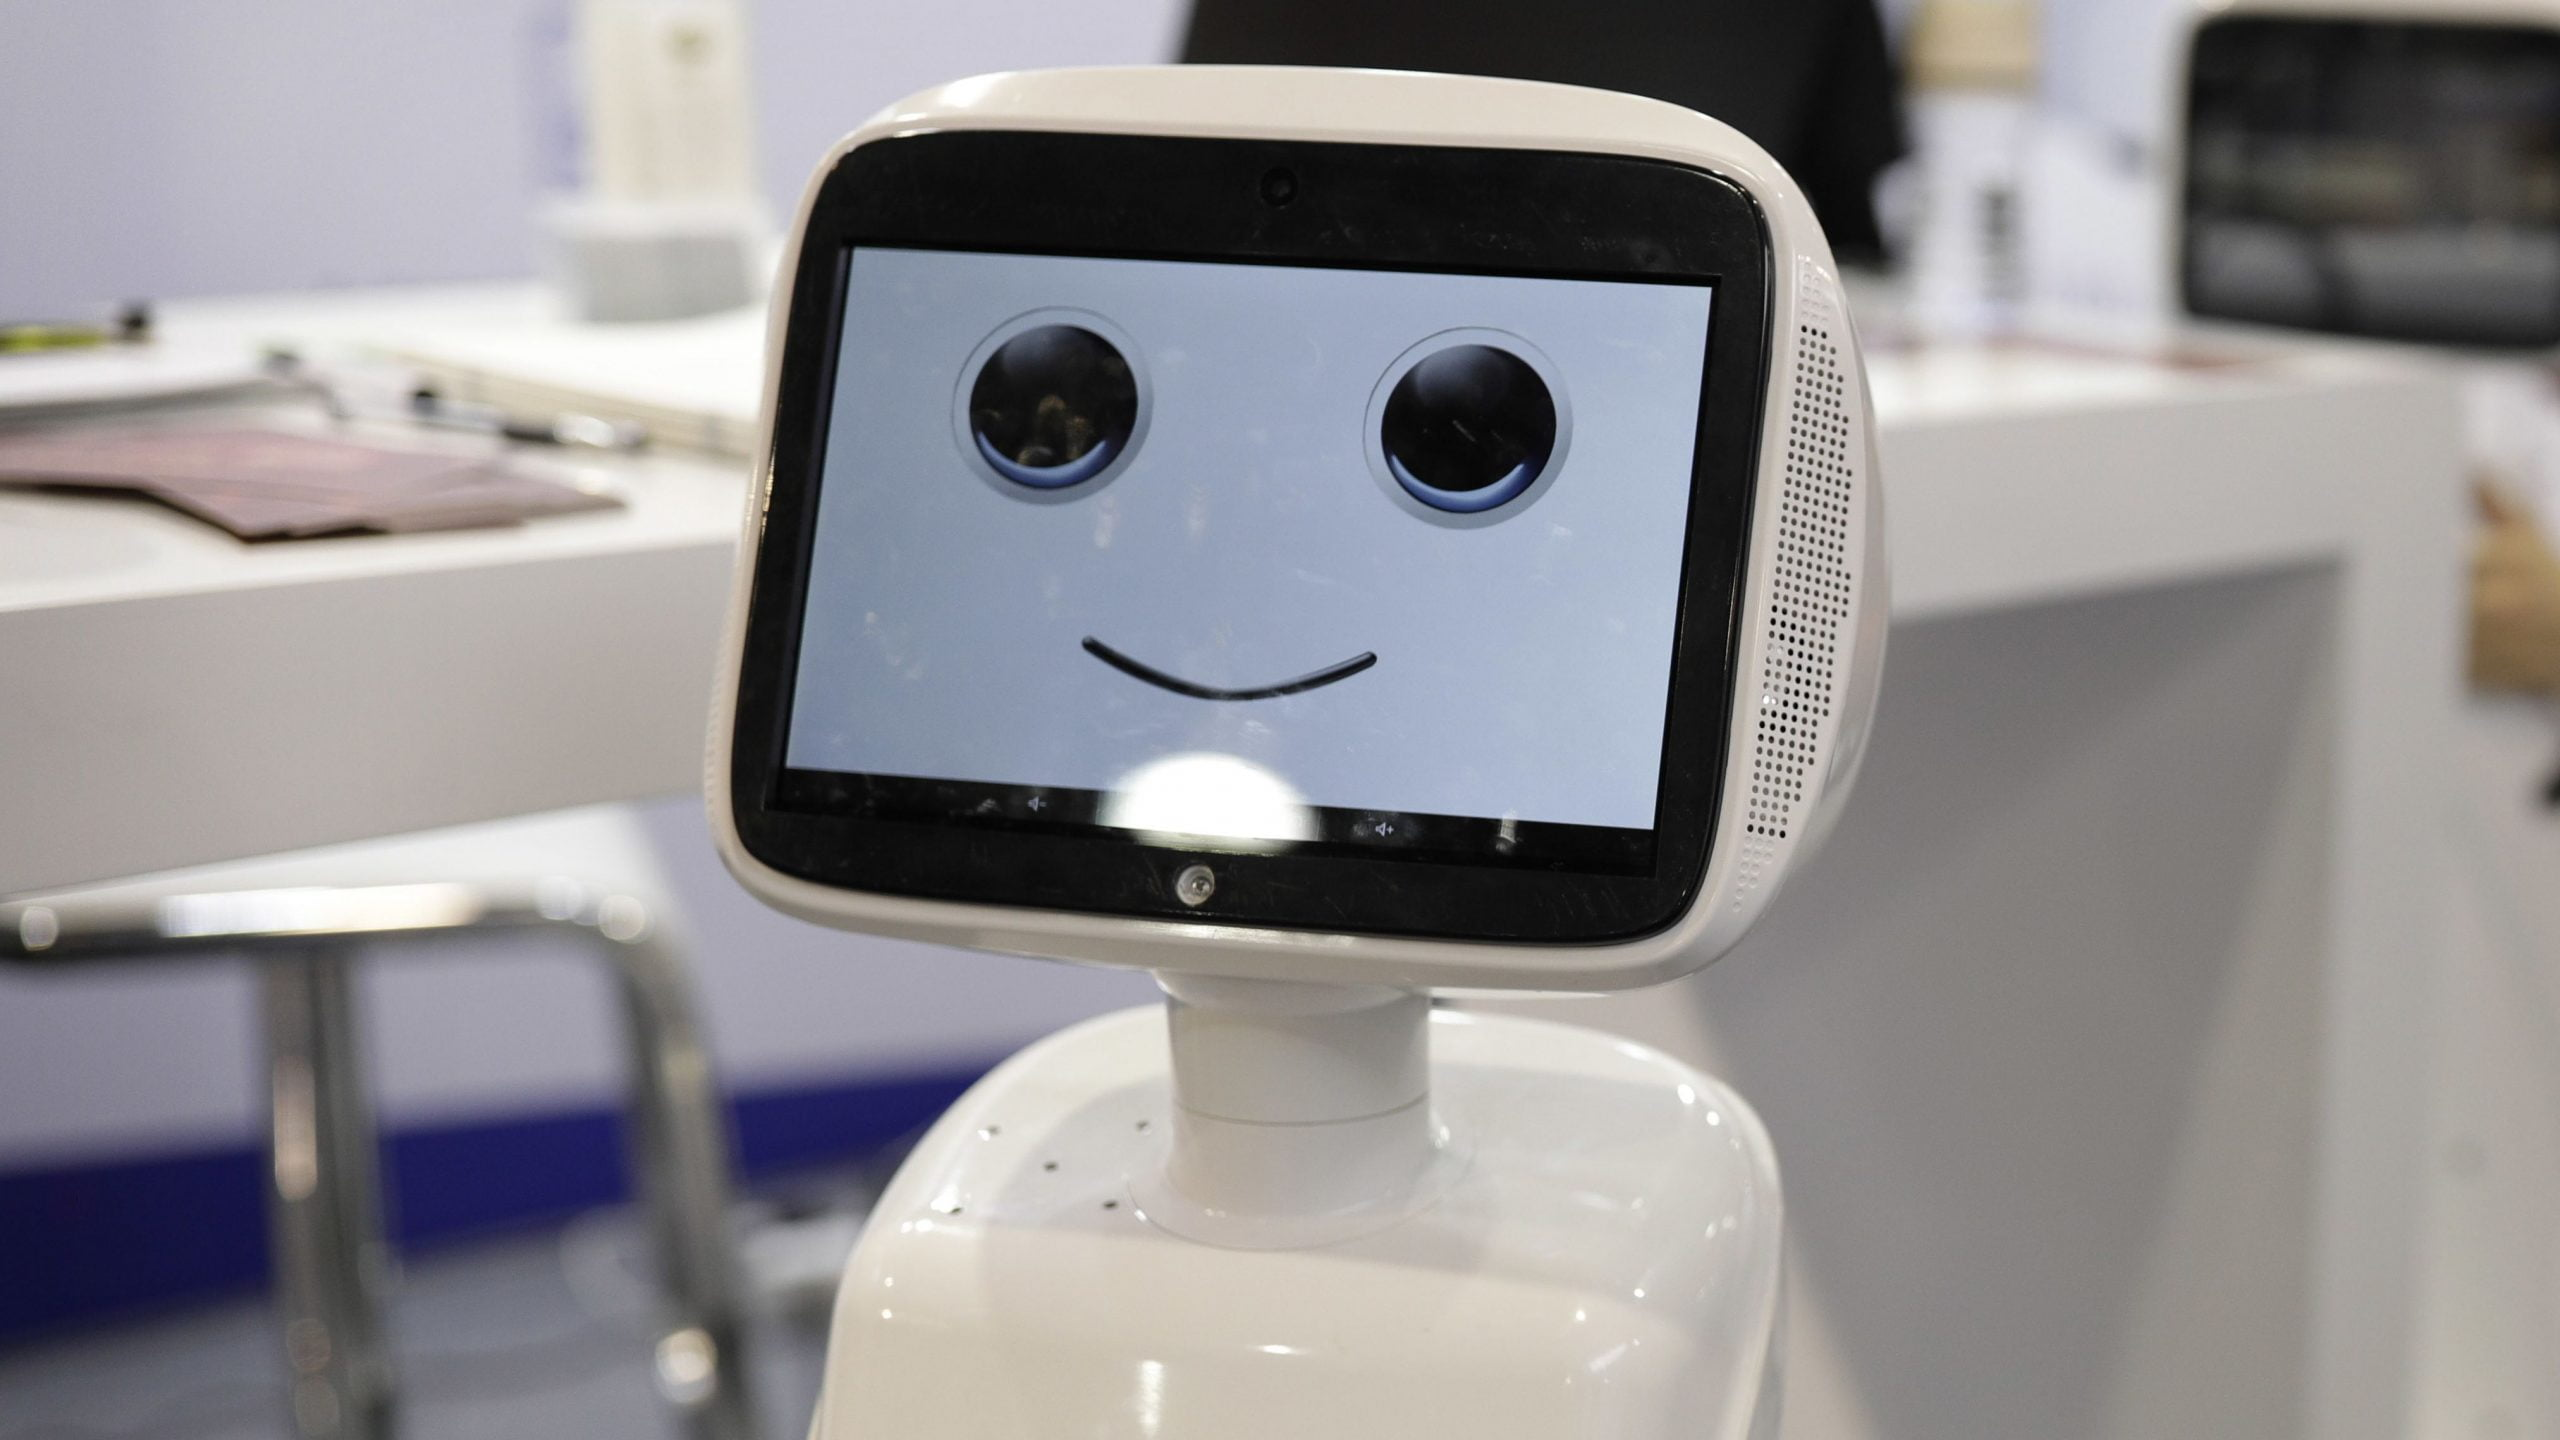 Yes, robots will do our job, but that's okay